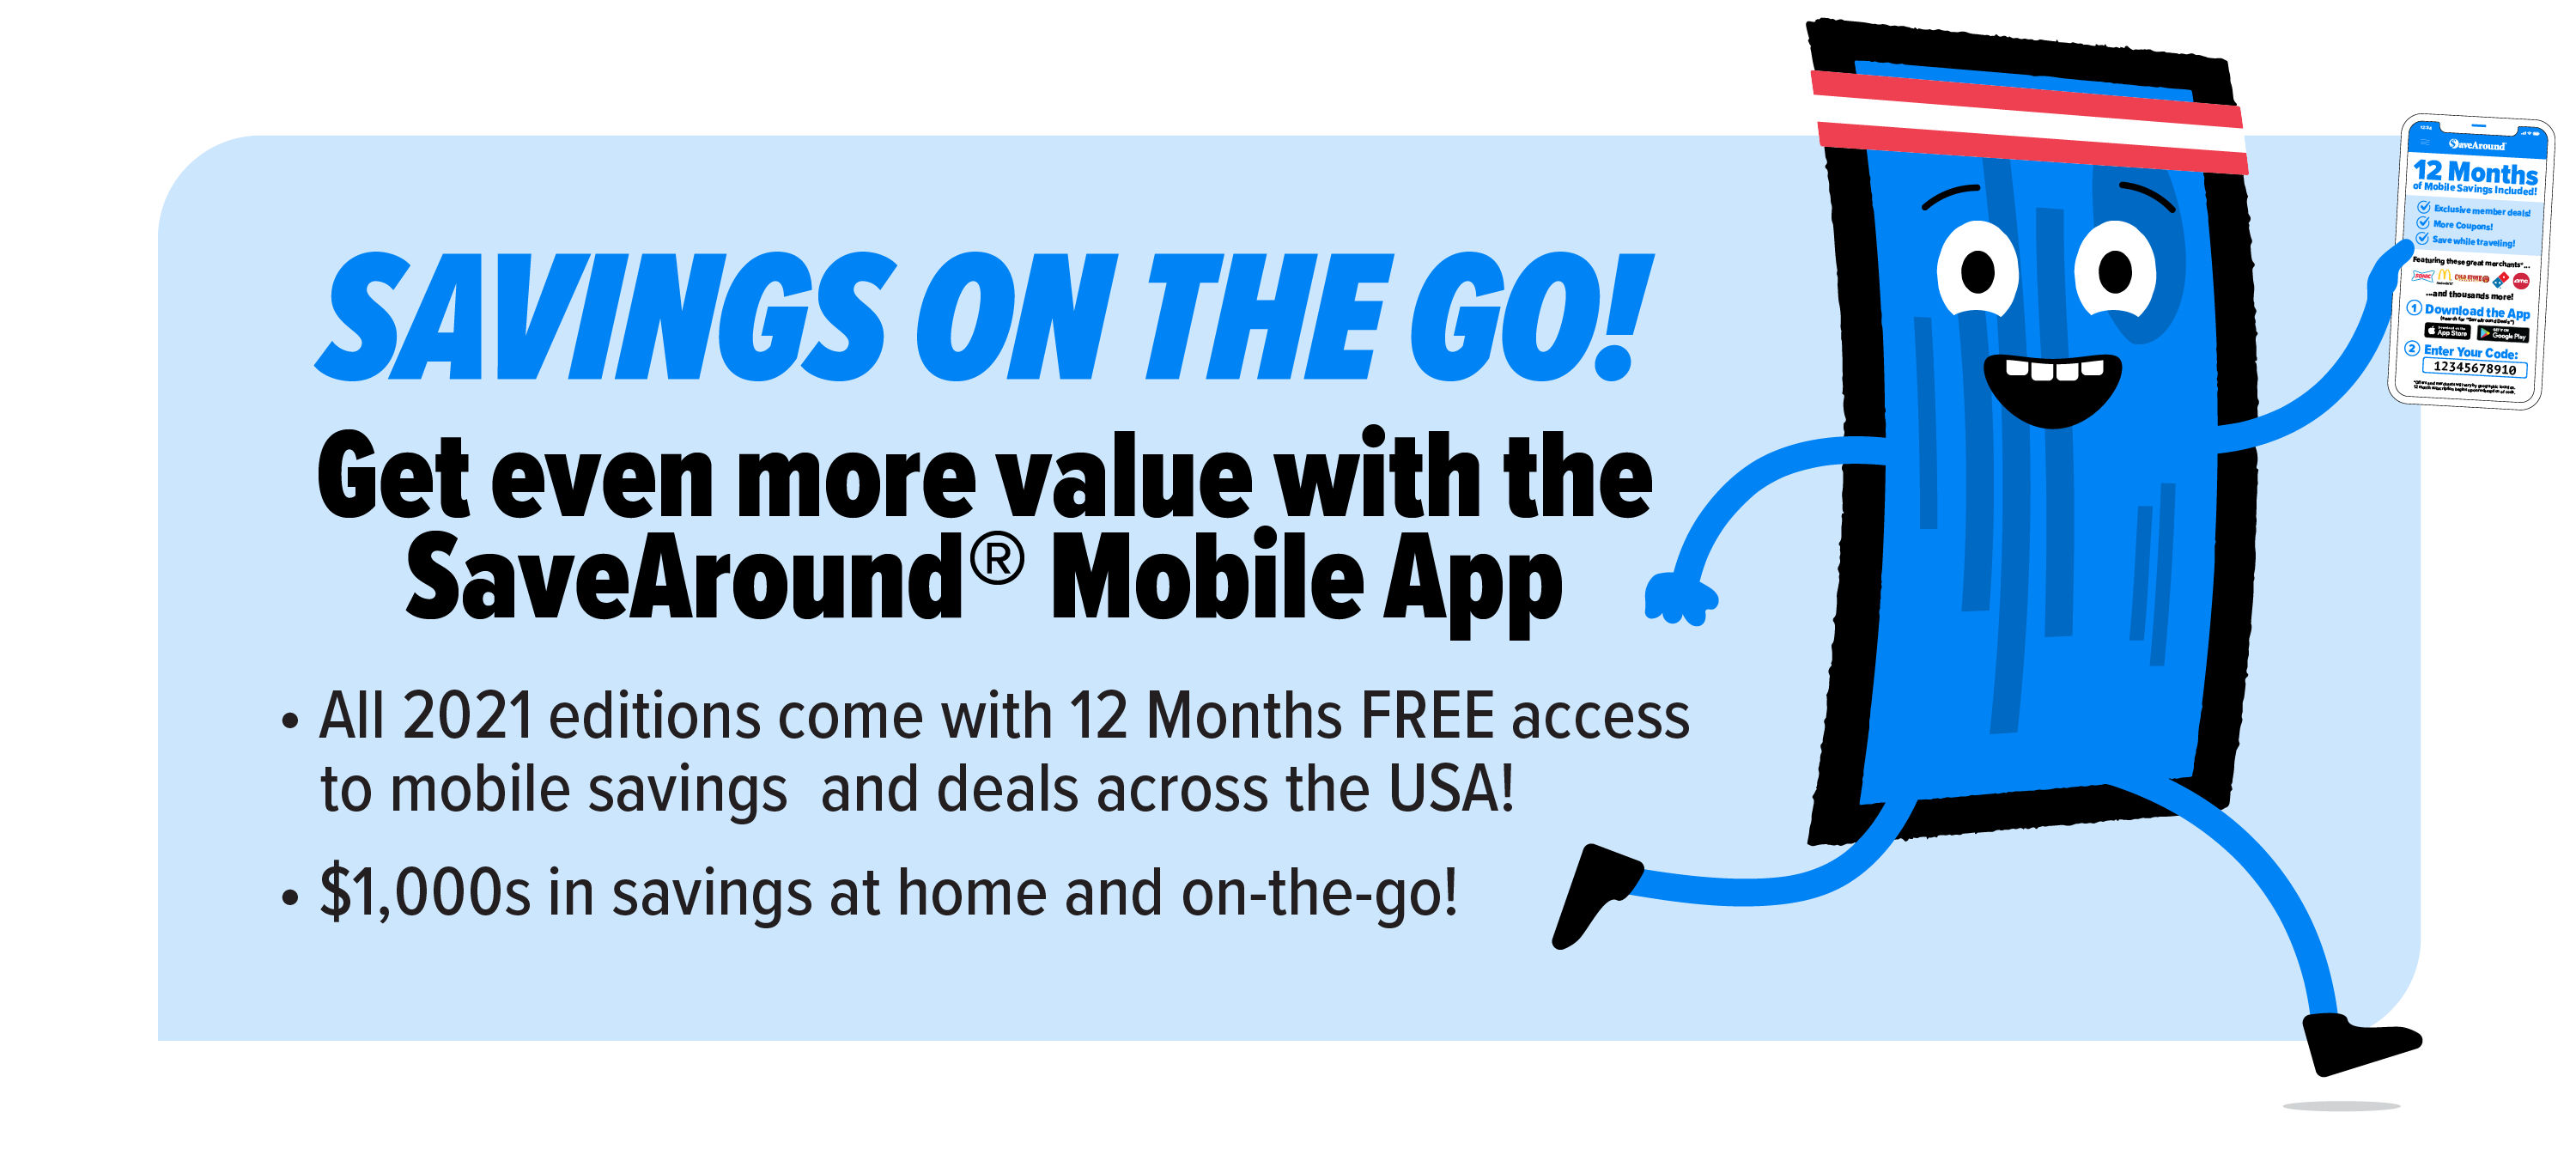 Savings on the Go! Get even more value with the SaveAround® Mobile App! All 2021 editions come with 12 Months FREE accessto mobile savings and deals across the USA! $1,000s in savings at home and on-the-go!